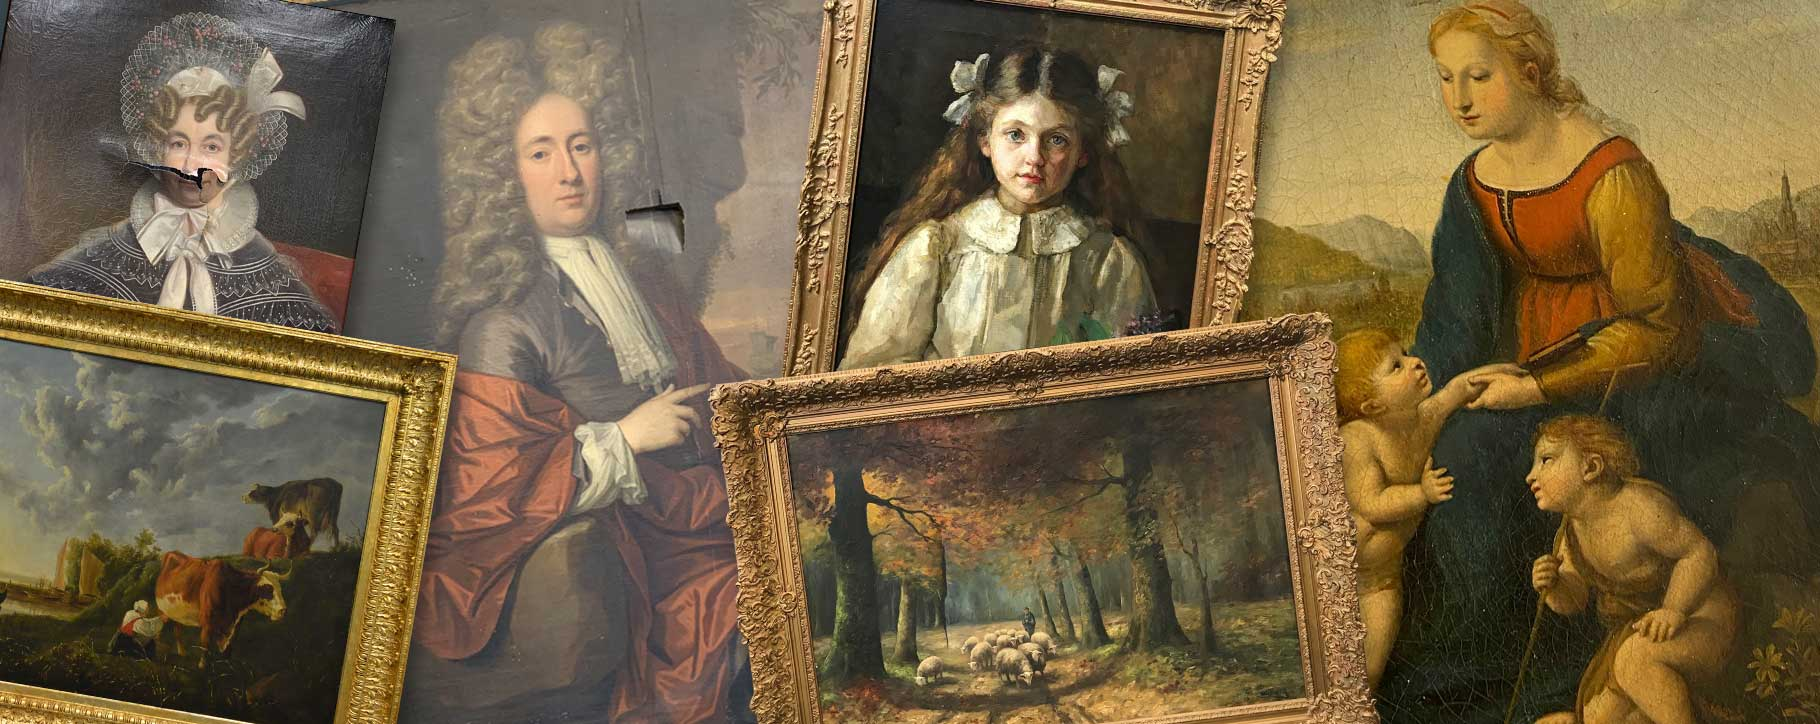 oil painting damage that can. be repaired